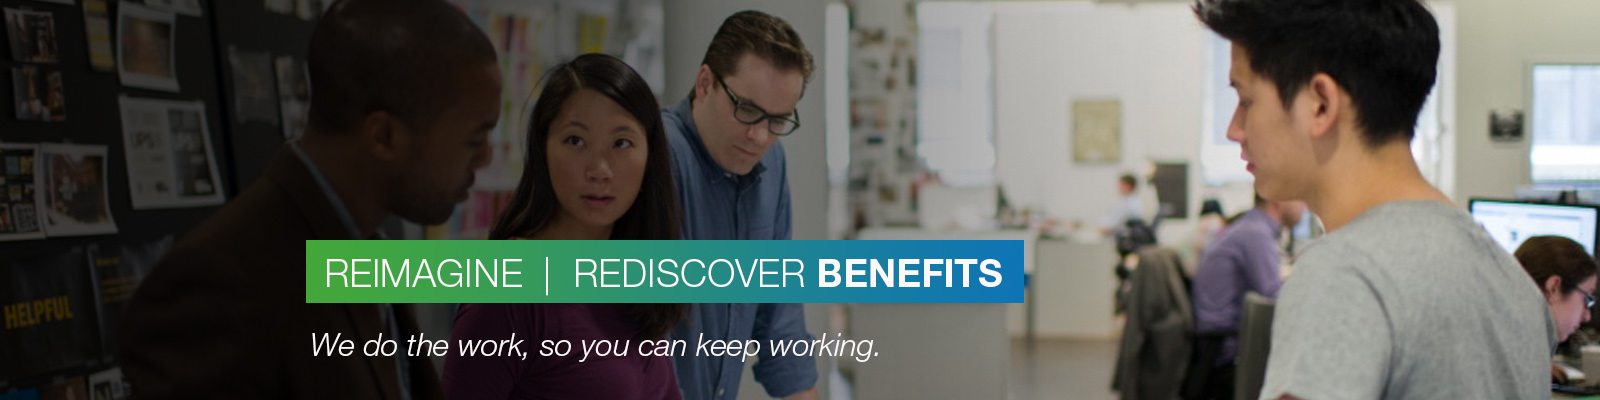 REIMAGINE | REDISCOVER BENEFITS: We do the work, so you can keep working